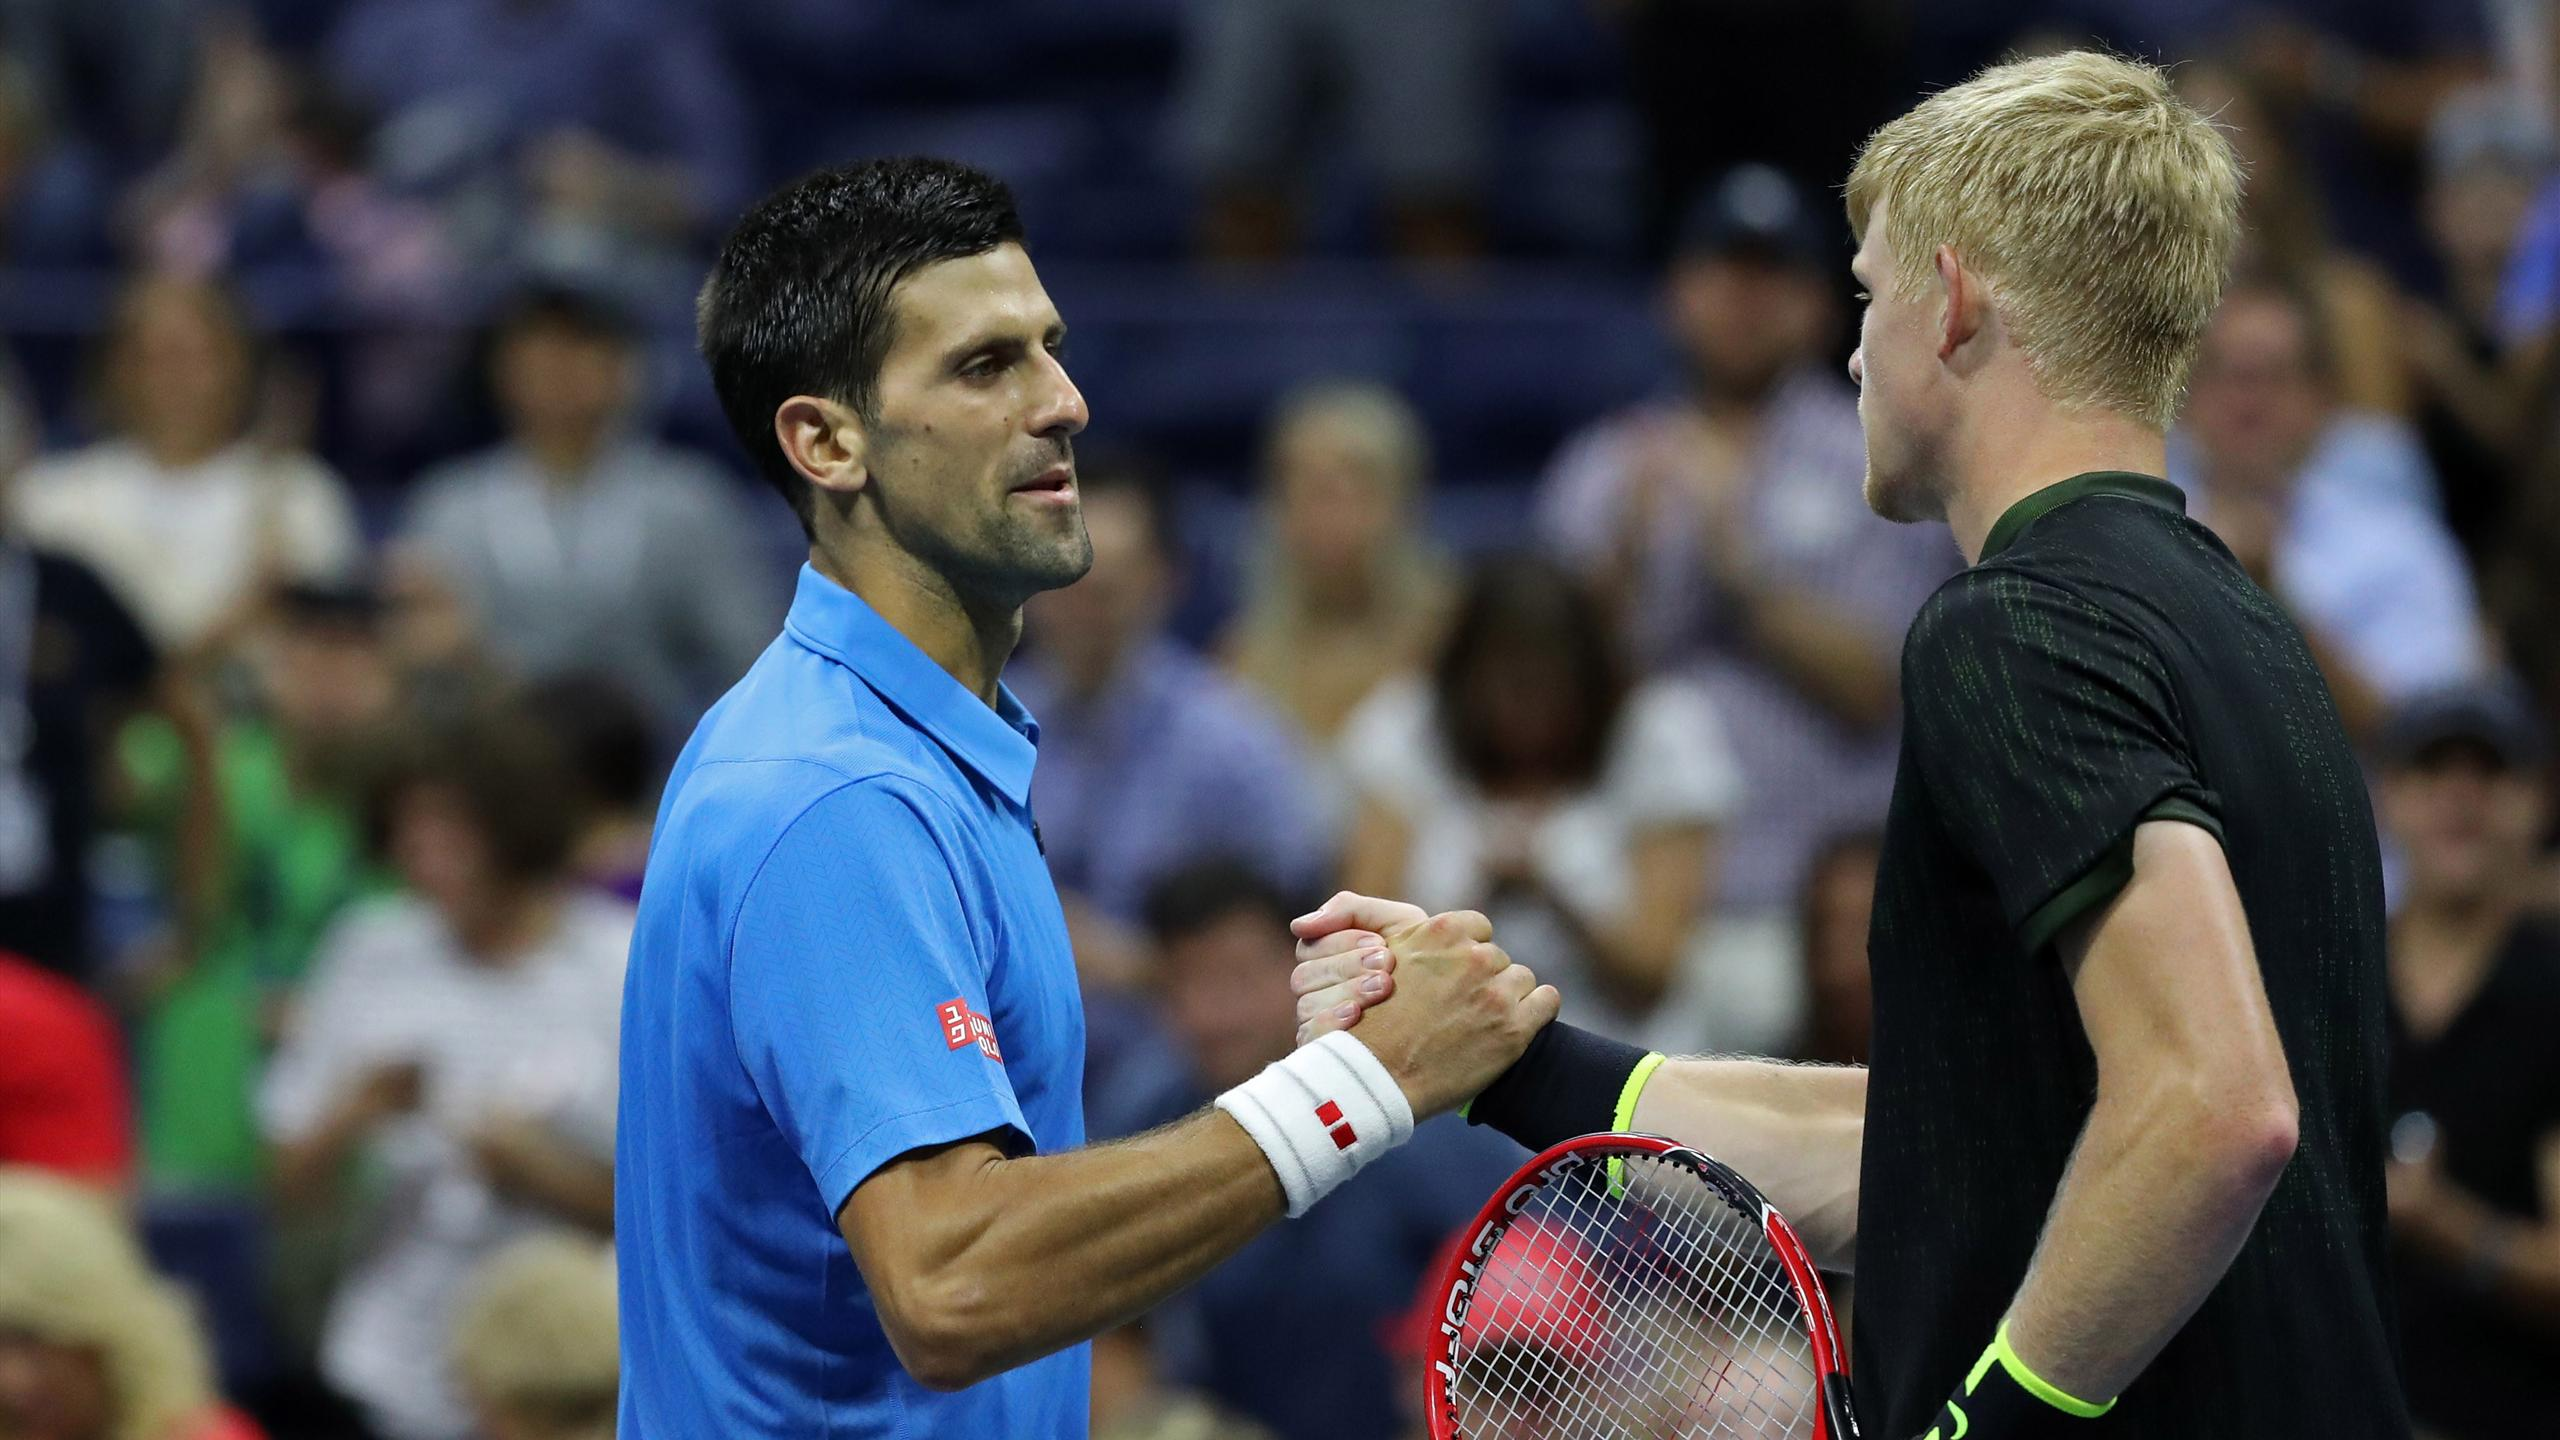 Novak Djokovic of Serbia (L) shakes hands with Kyle Edmund of Great Britain (R) after their match on day seven of the 2016 U.S. Open tennis tournament at USTA Billie Jean King National Tennis Center